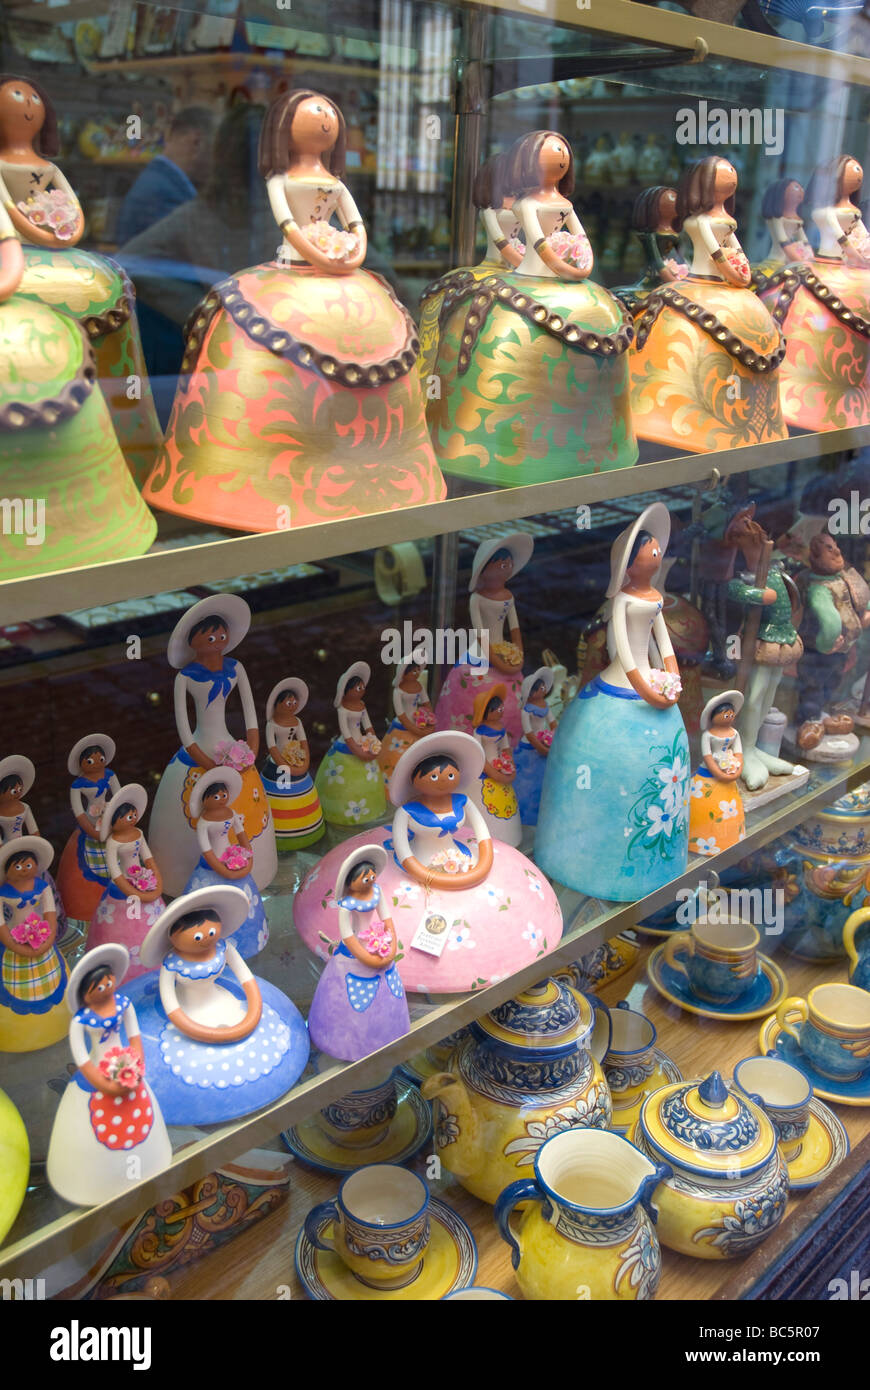 Ceramic figures in a shop window. Toledo. Castile La Mancha. Spain. - Stock Image